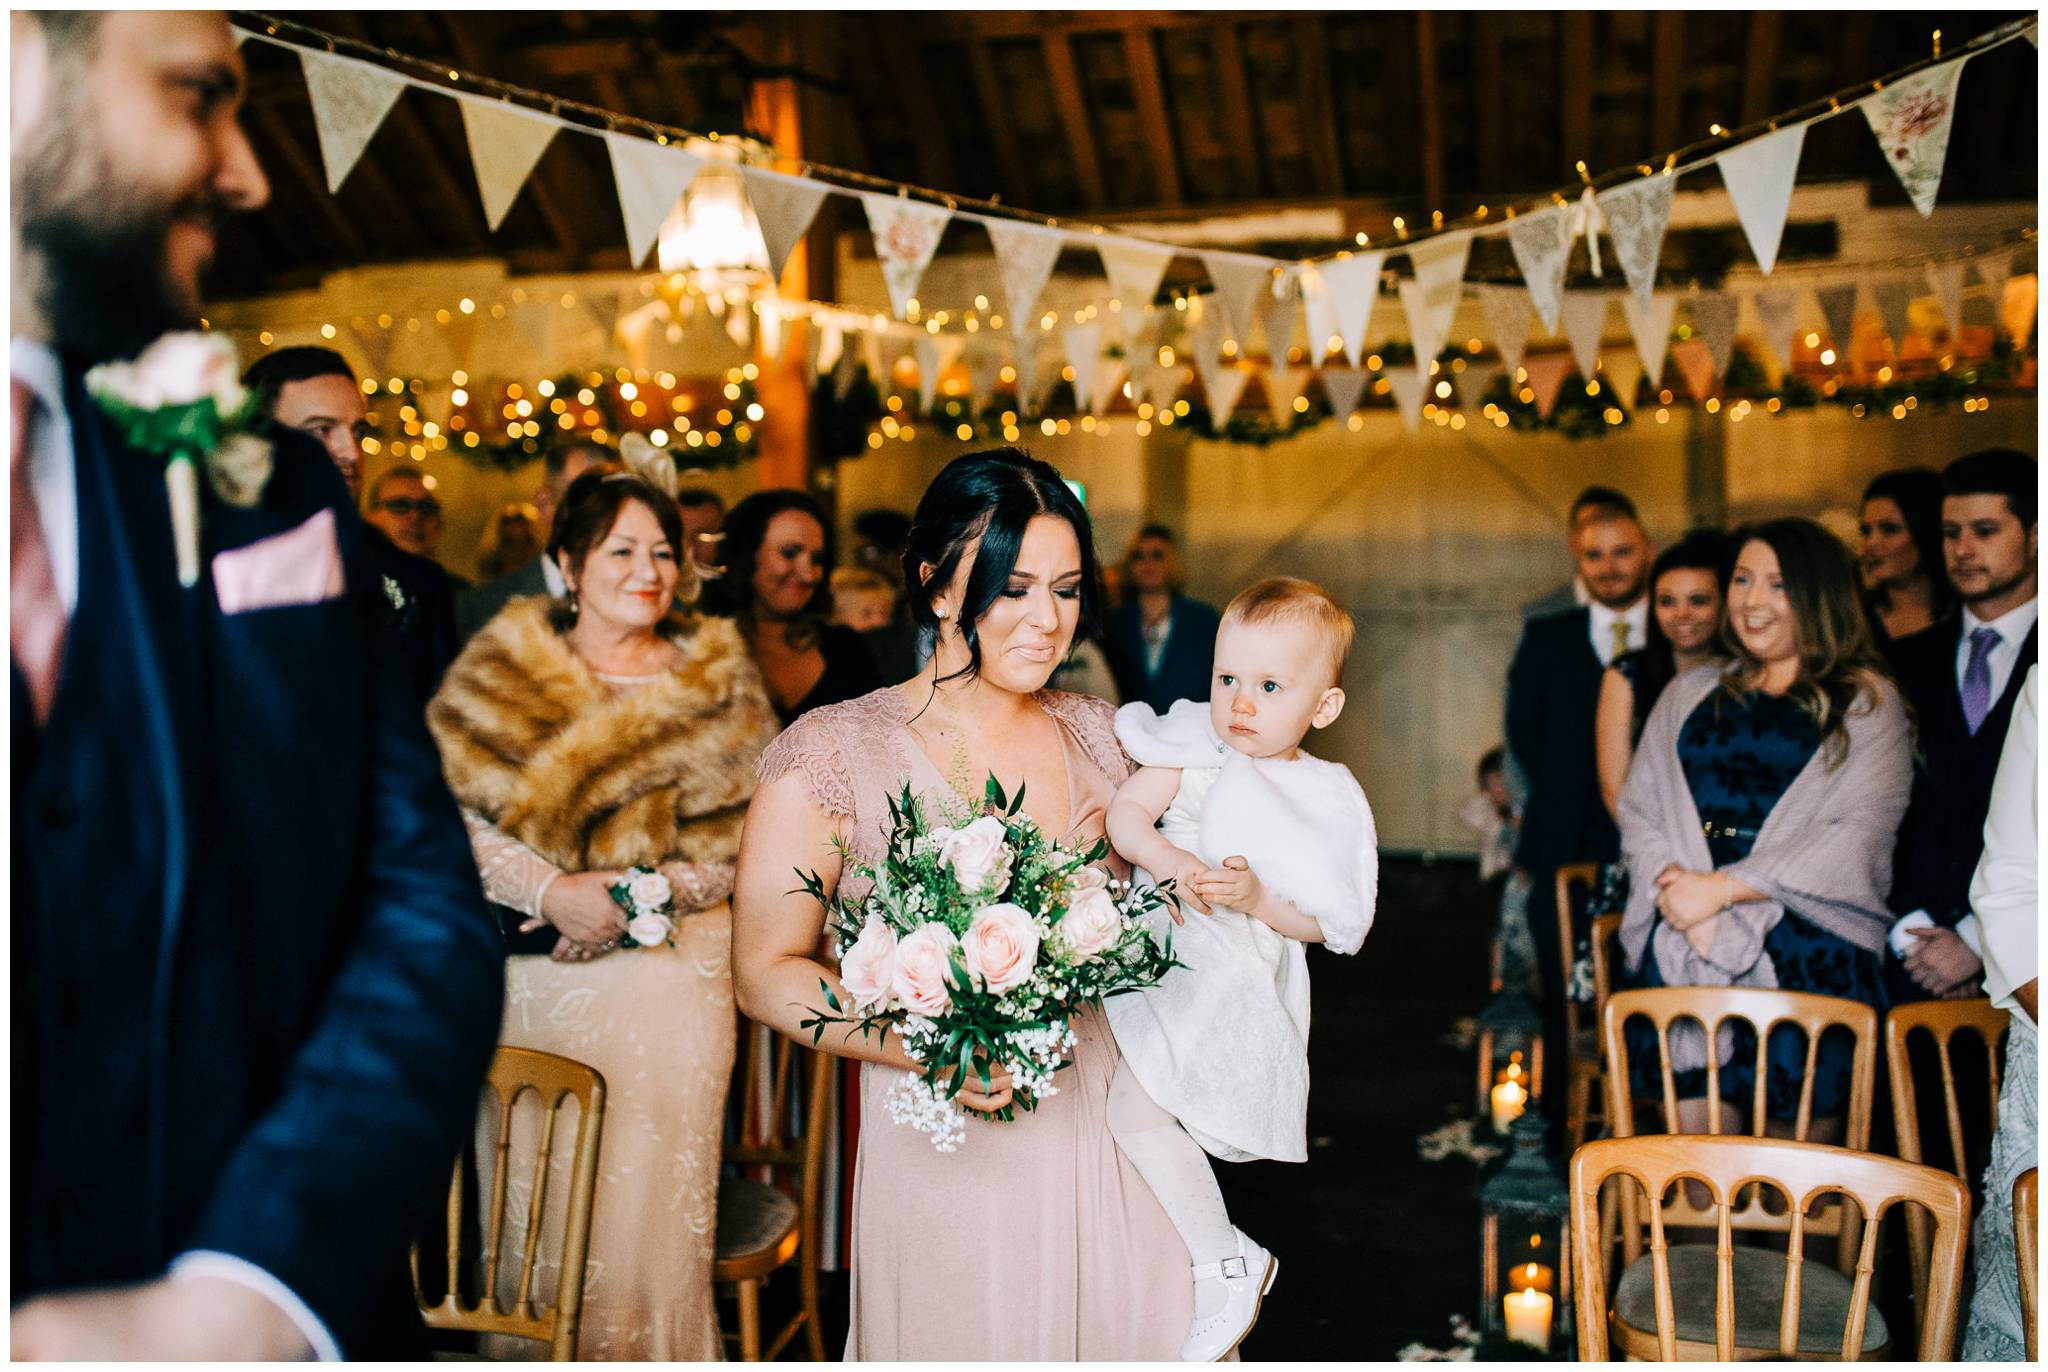 East Riddlesden Hall Photographer - Rustic winter Barn Wedding_0024.jpg